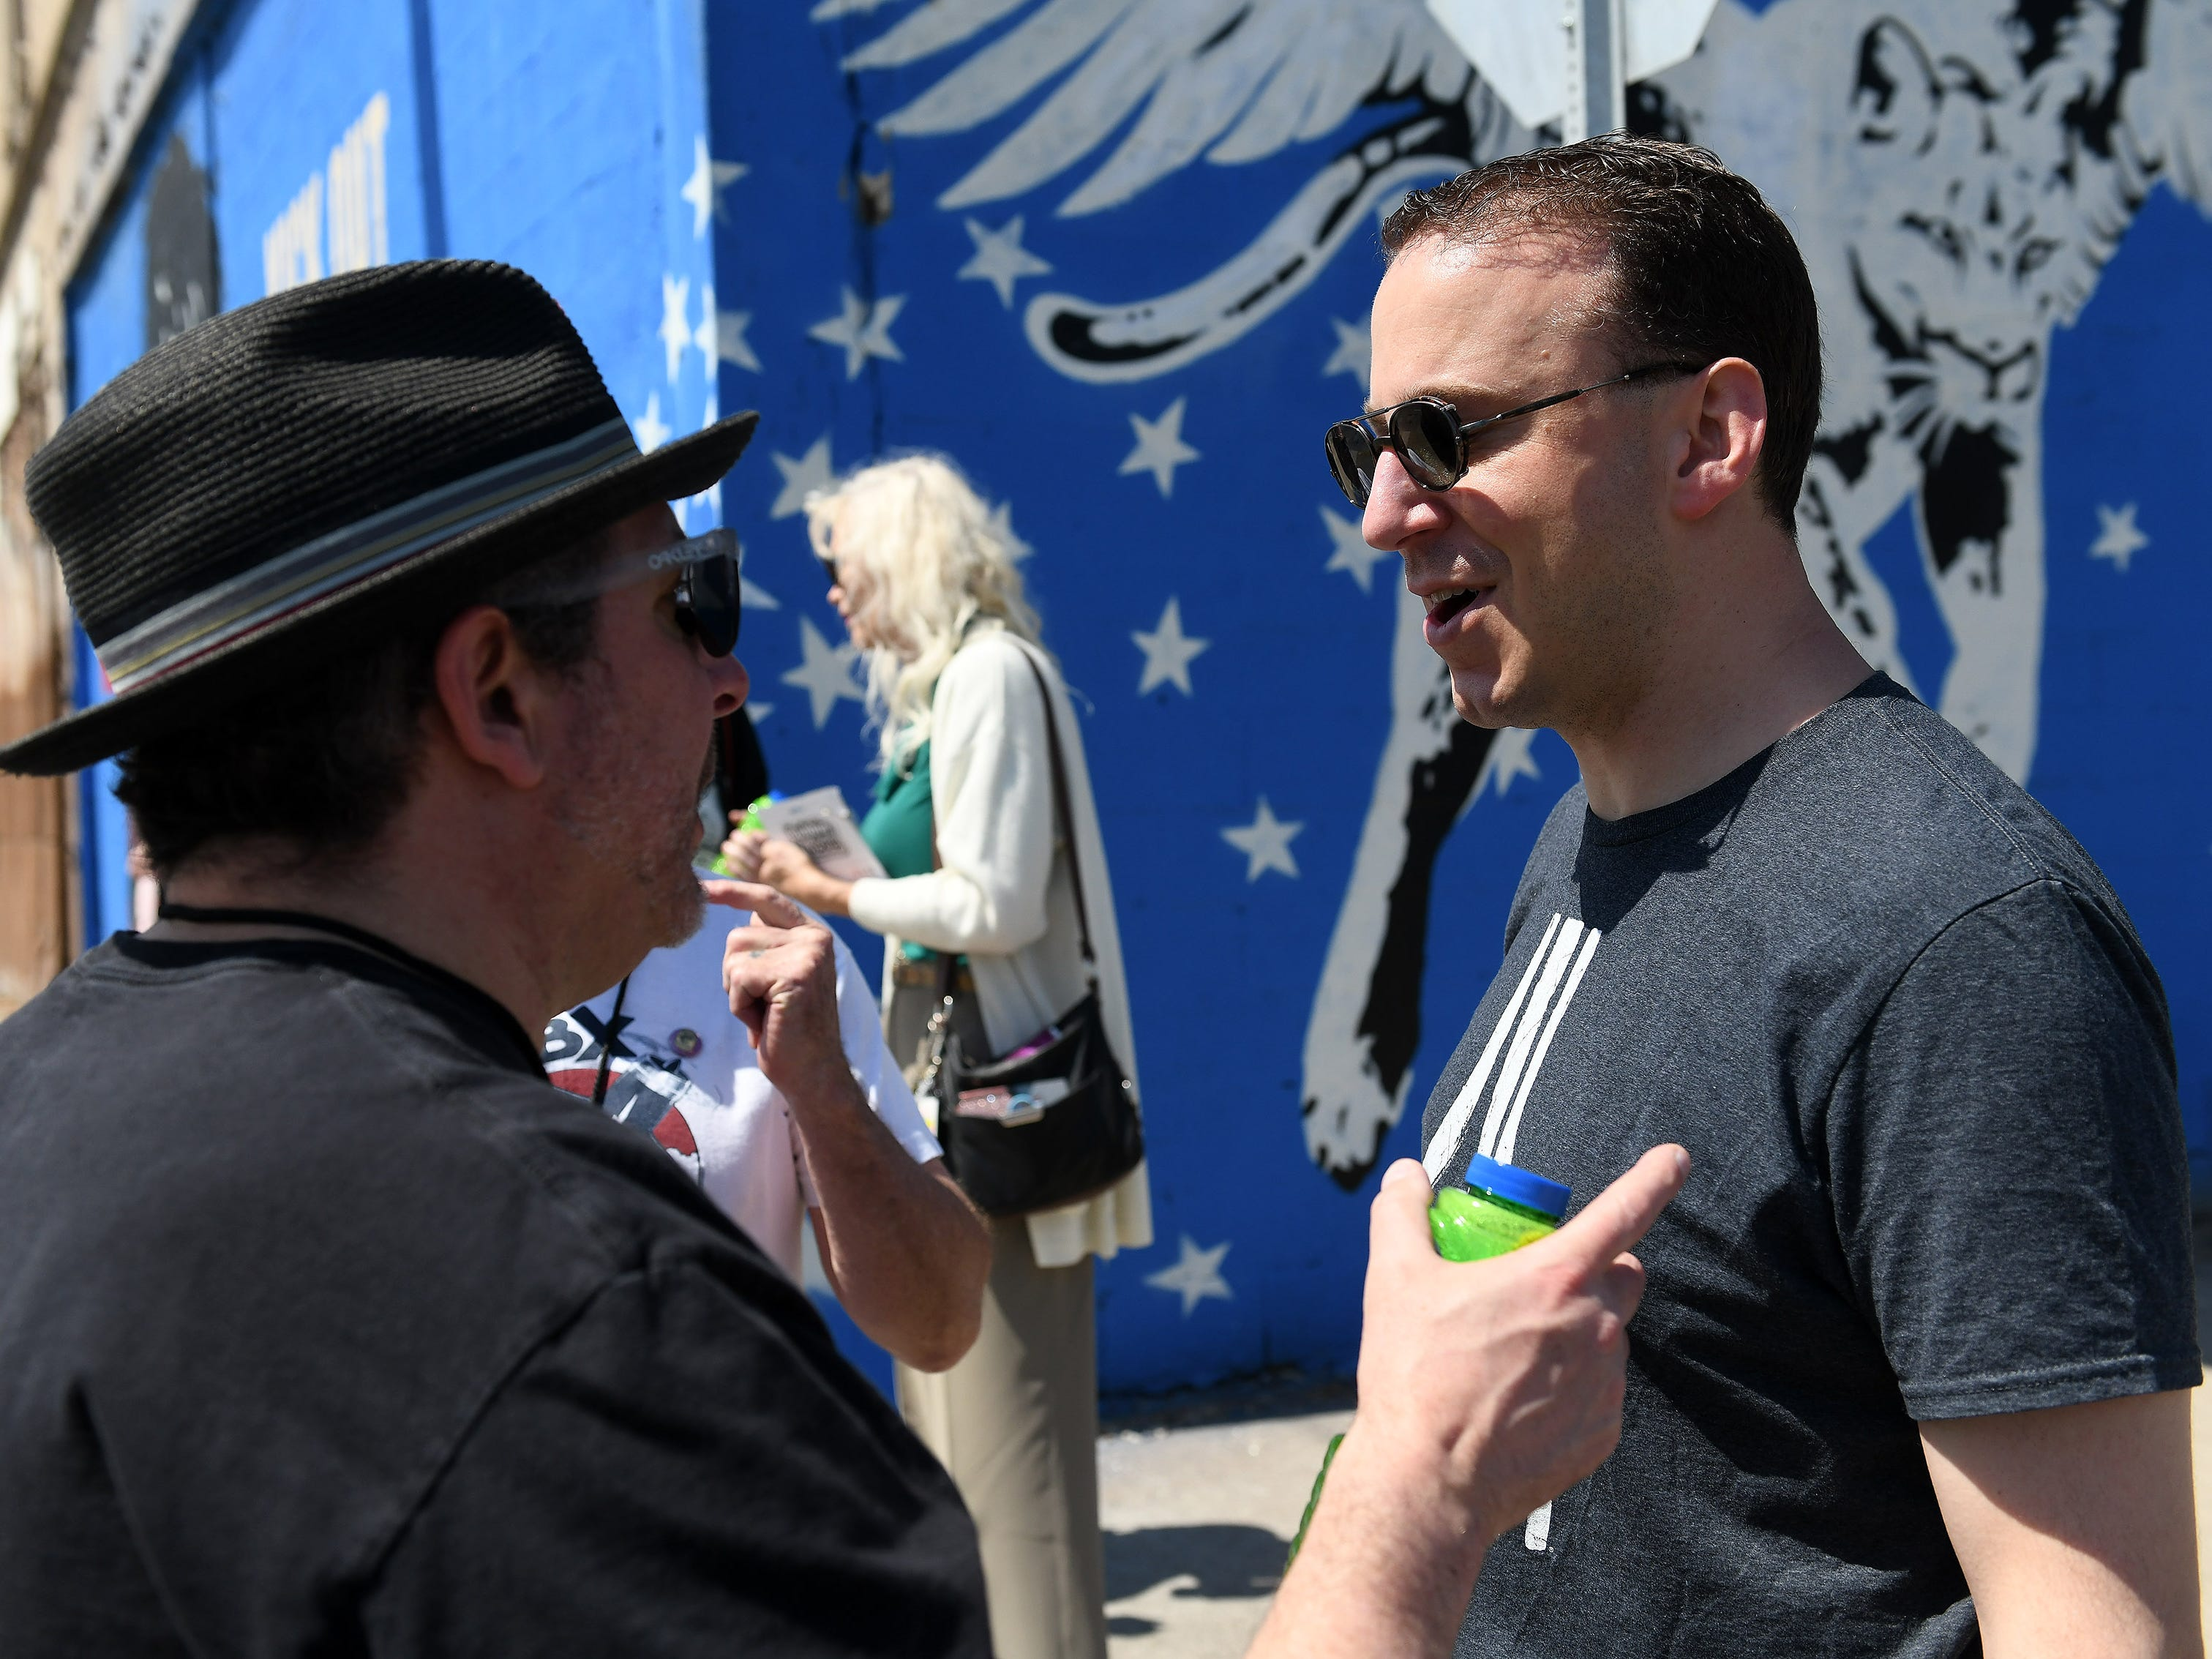 Andy Fradkin of Dearborn, a 1994 graduate of Dearborn High School and was a student of Russ Gibb, right, talks with filmmaker Tony D'Annunzio, left, about Russ Gibb. Fradkin was friends with Russ Gibb after graduating high school and is the executor of Gibb's will.  Memorial service details are still to come.